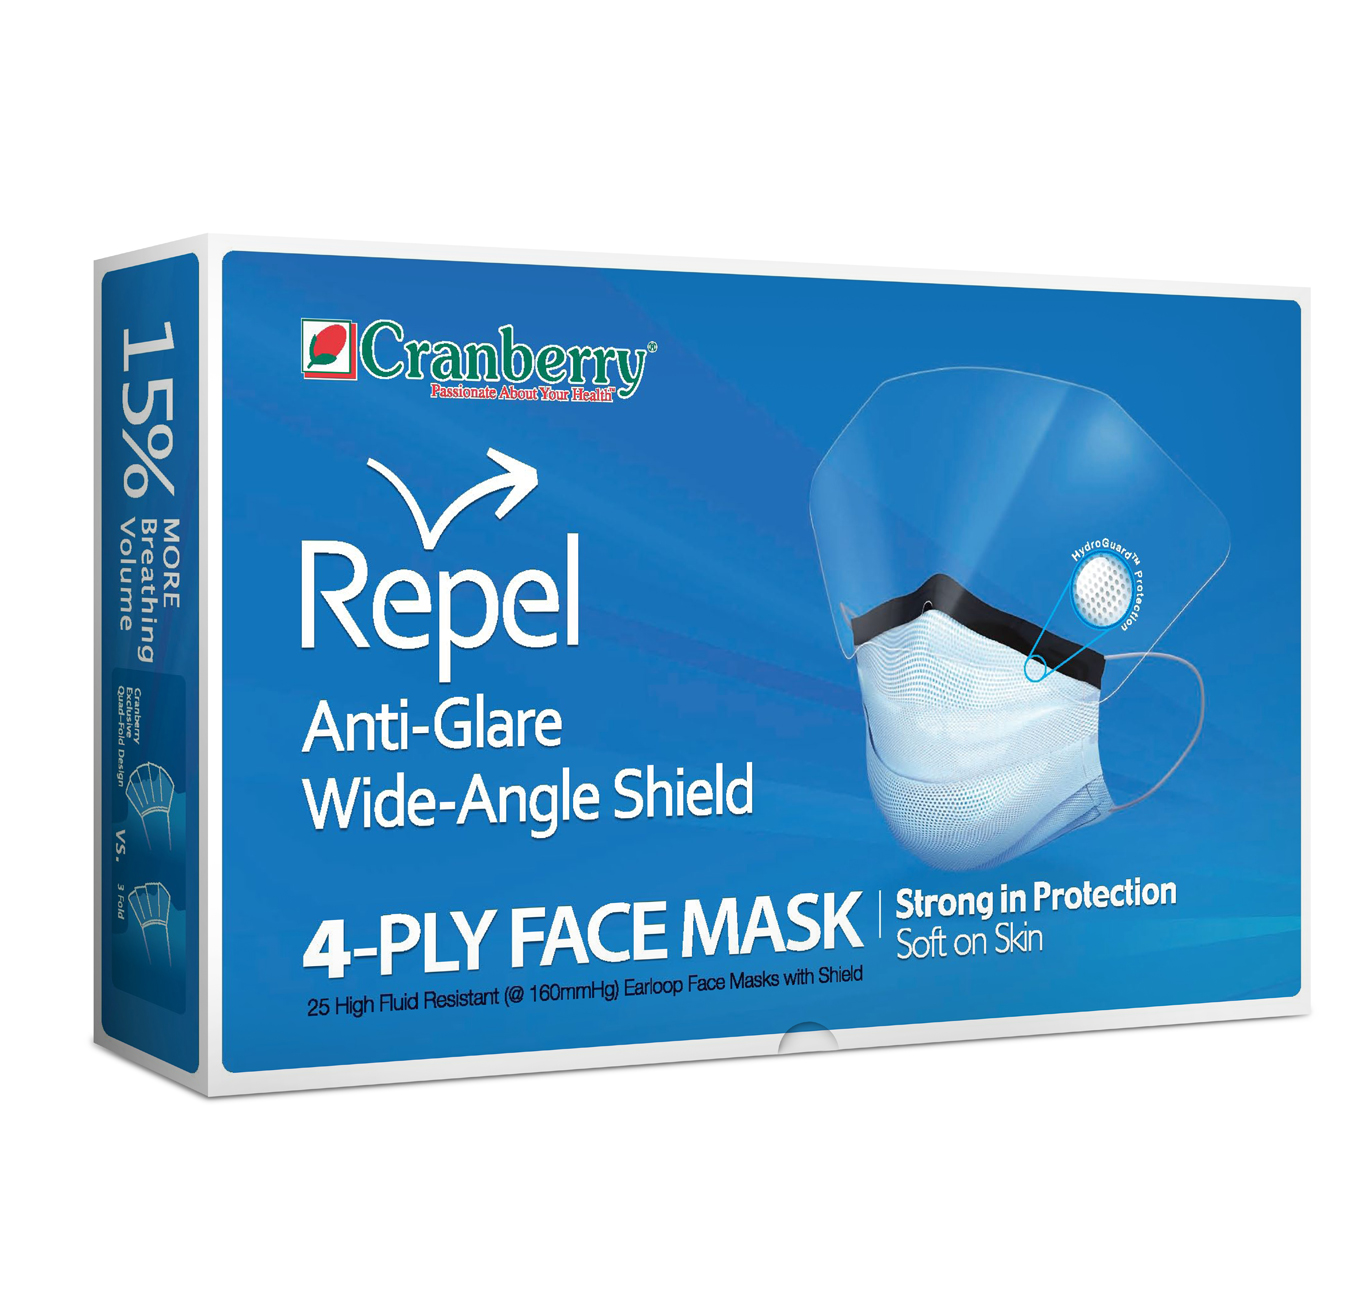 Cranberry Repel Anti-Glare Wide Angle Shield 4-Ply Face Mask-0